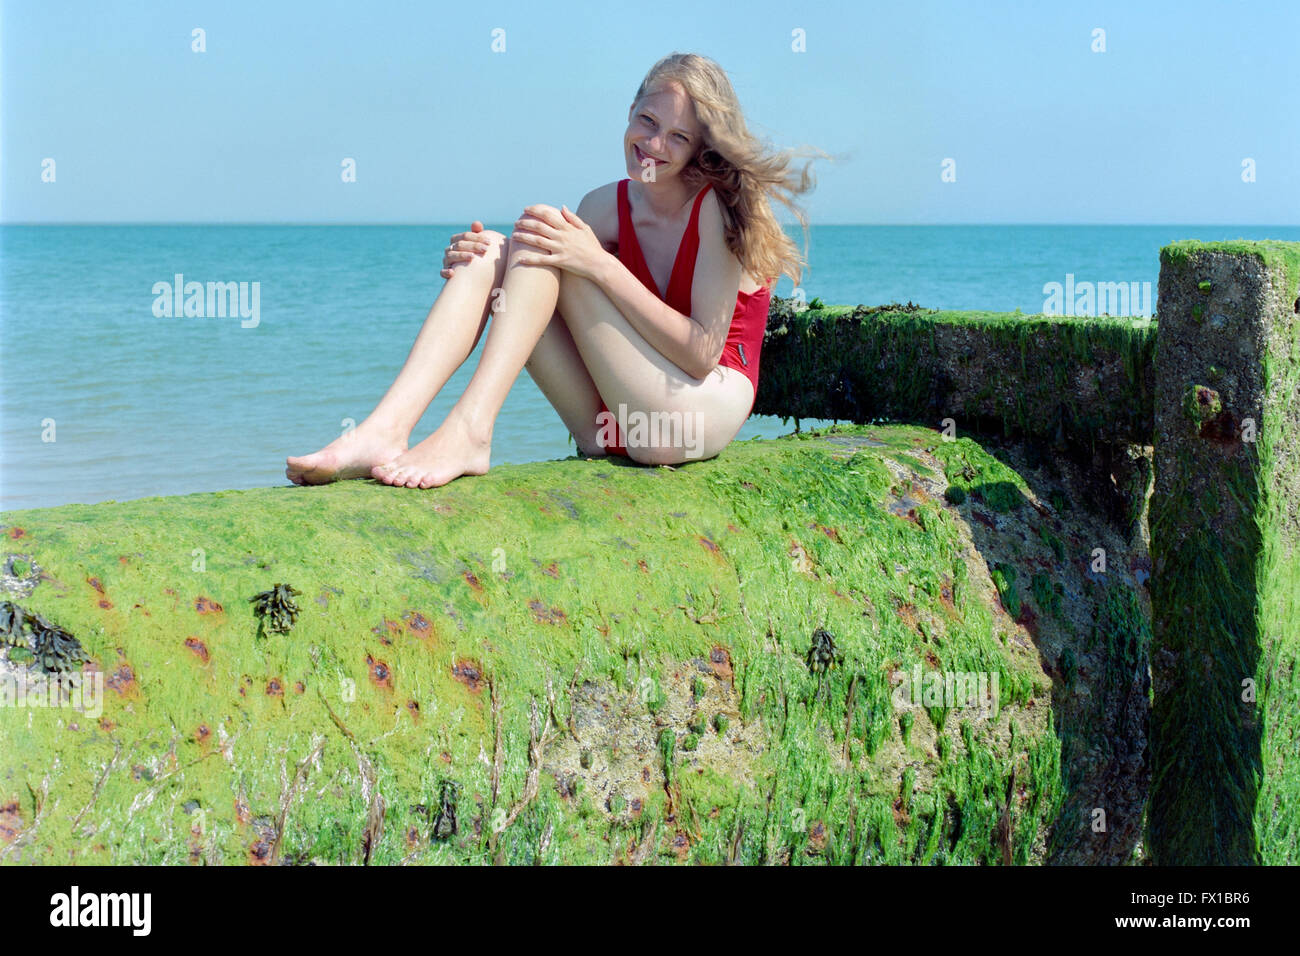 young blonde haired female in red swim suit enjoying southsea seafront england uk Stock Photo